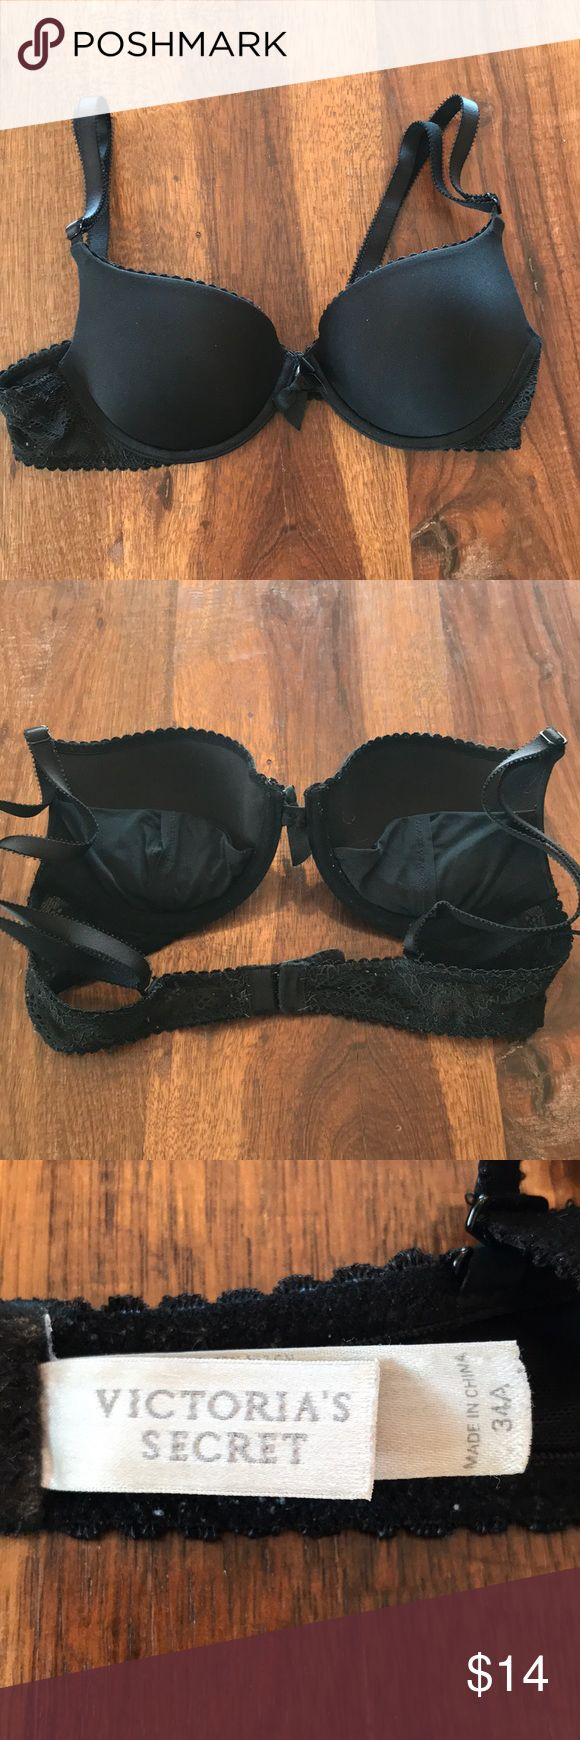 VS Black Push Up Bra 34A Black push up bra from Victoria's Secret with removable pads in cups. Straps are adjustable and can be converted to cross cross in the back. Size 34A. Good pre-loved condition but it has a lot of life left in it! Victoria's Secret Intimates & Sleepwear Bras